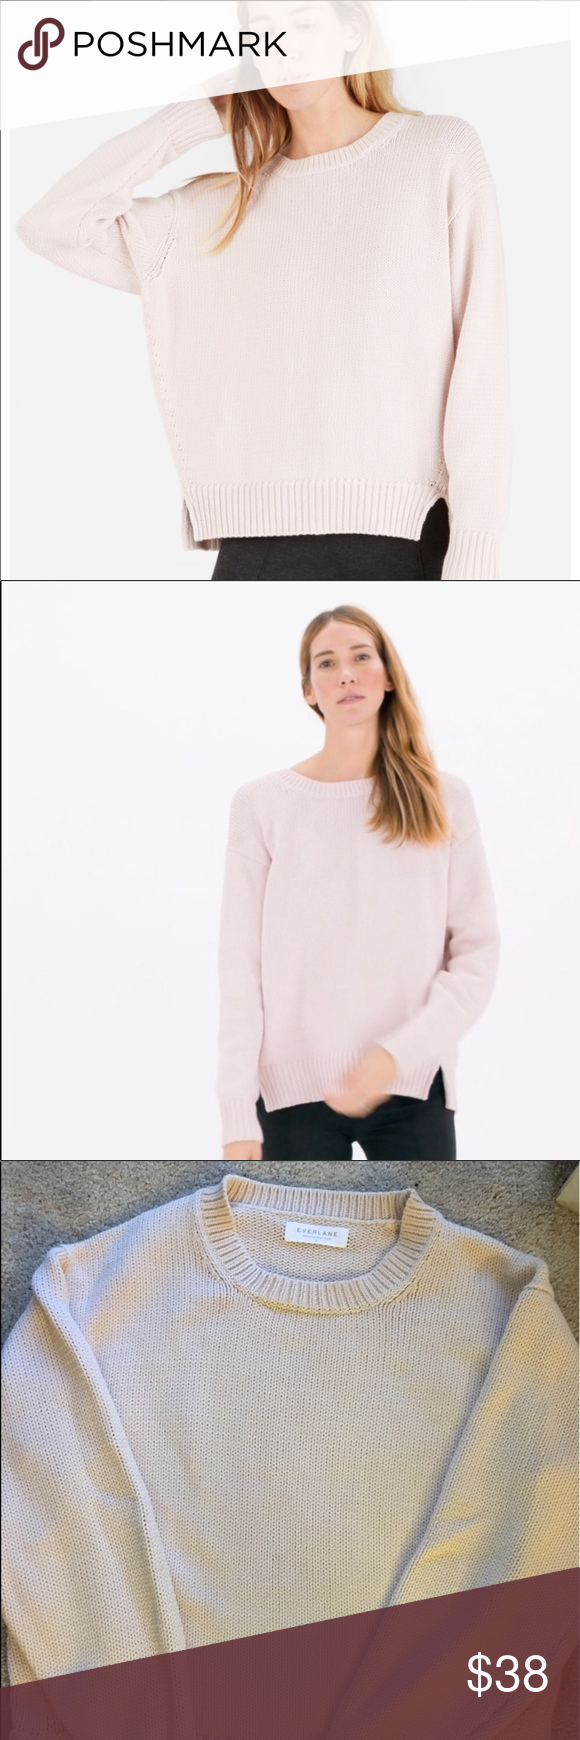 Everlane Pink Cotton Sweater Cotton Sweater Sweaters Pink Cotton